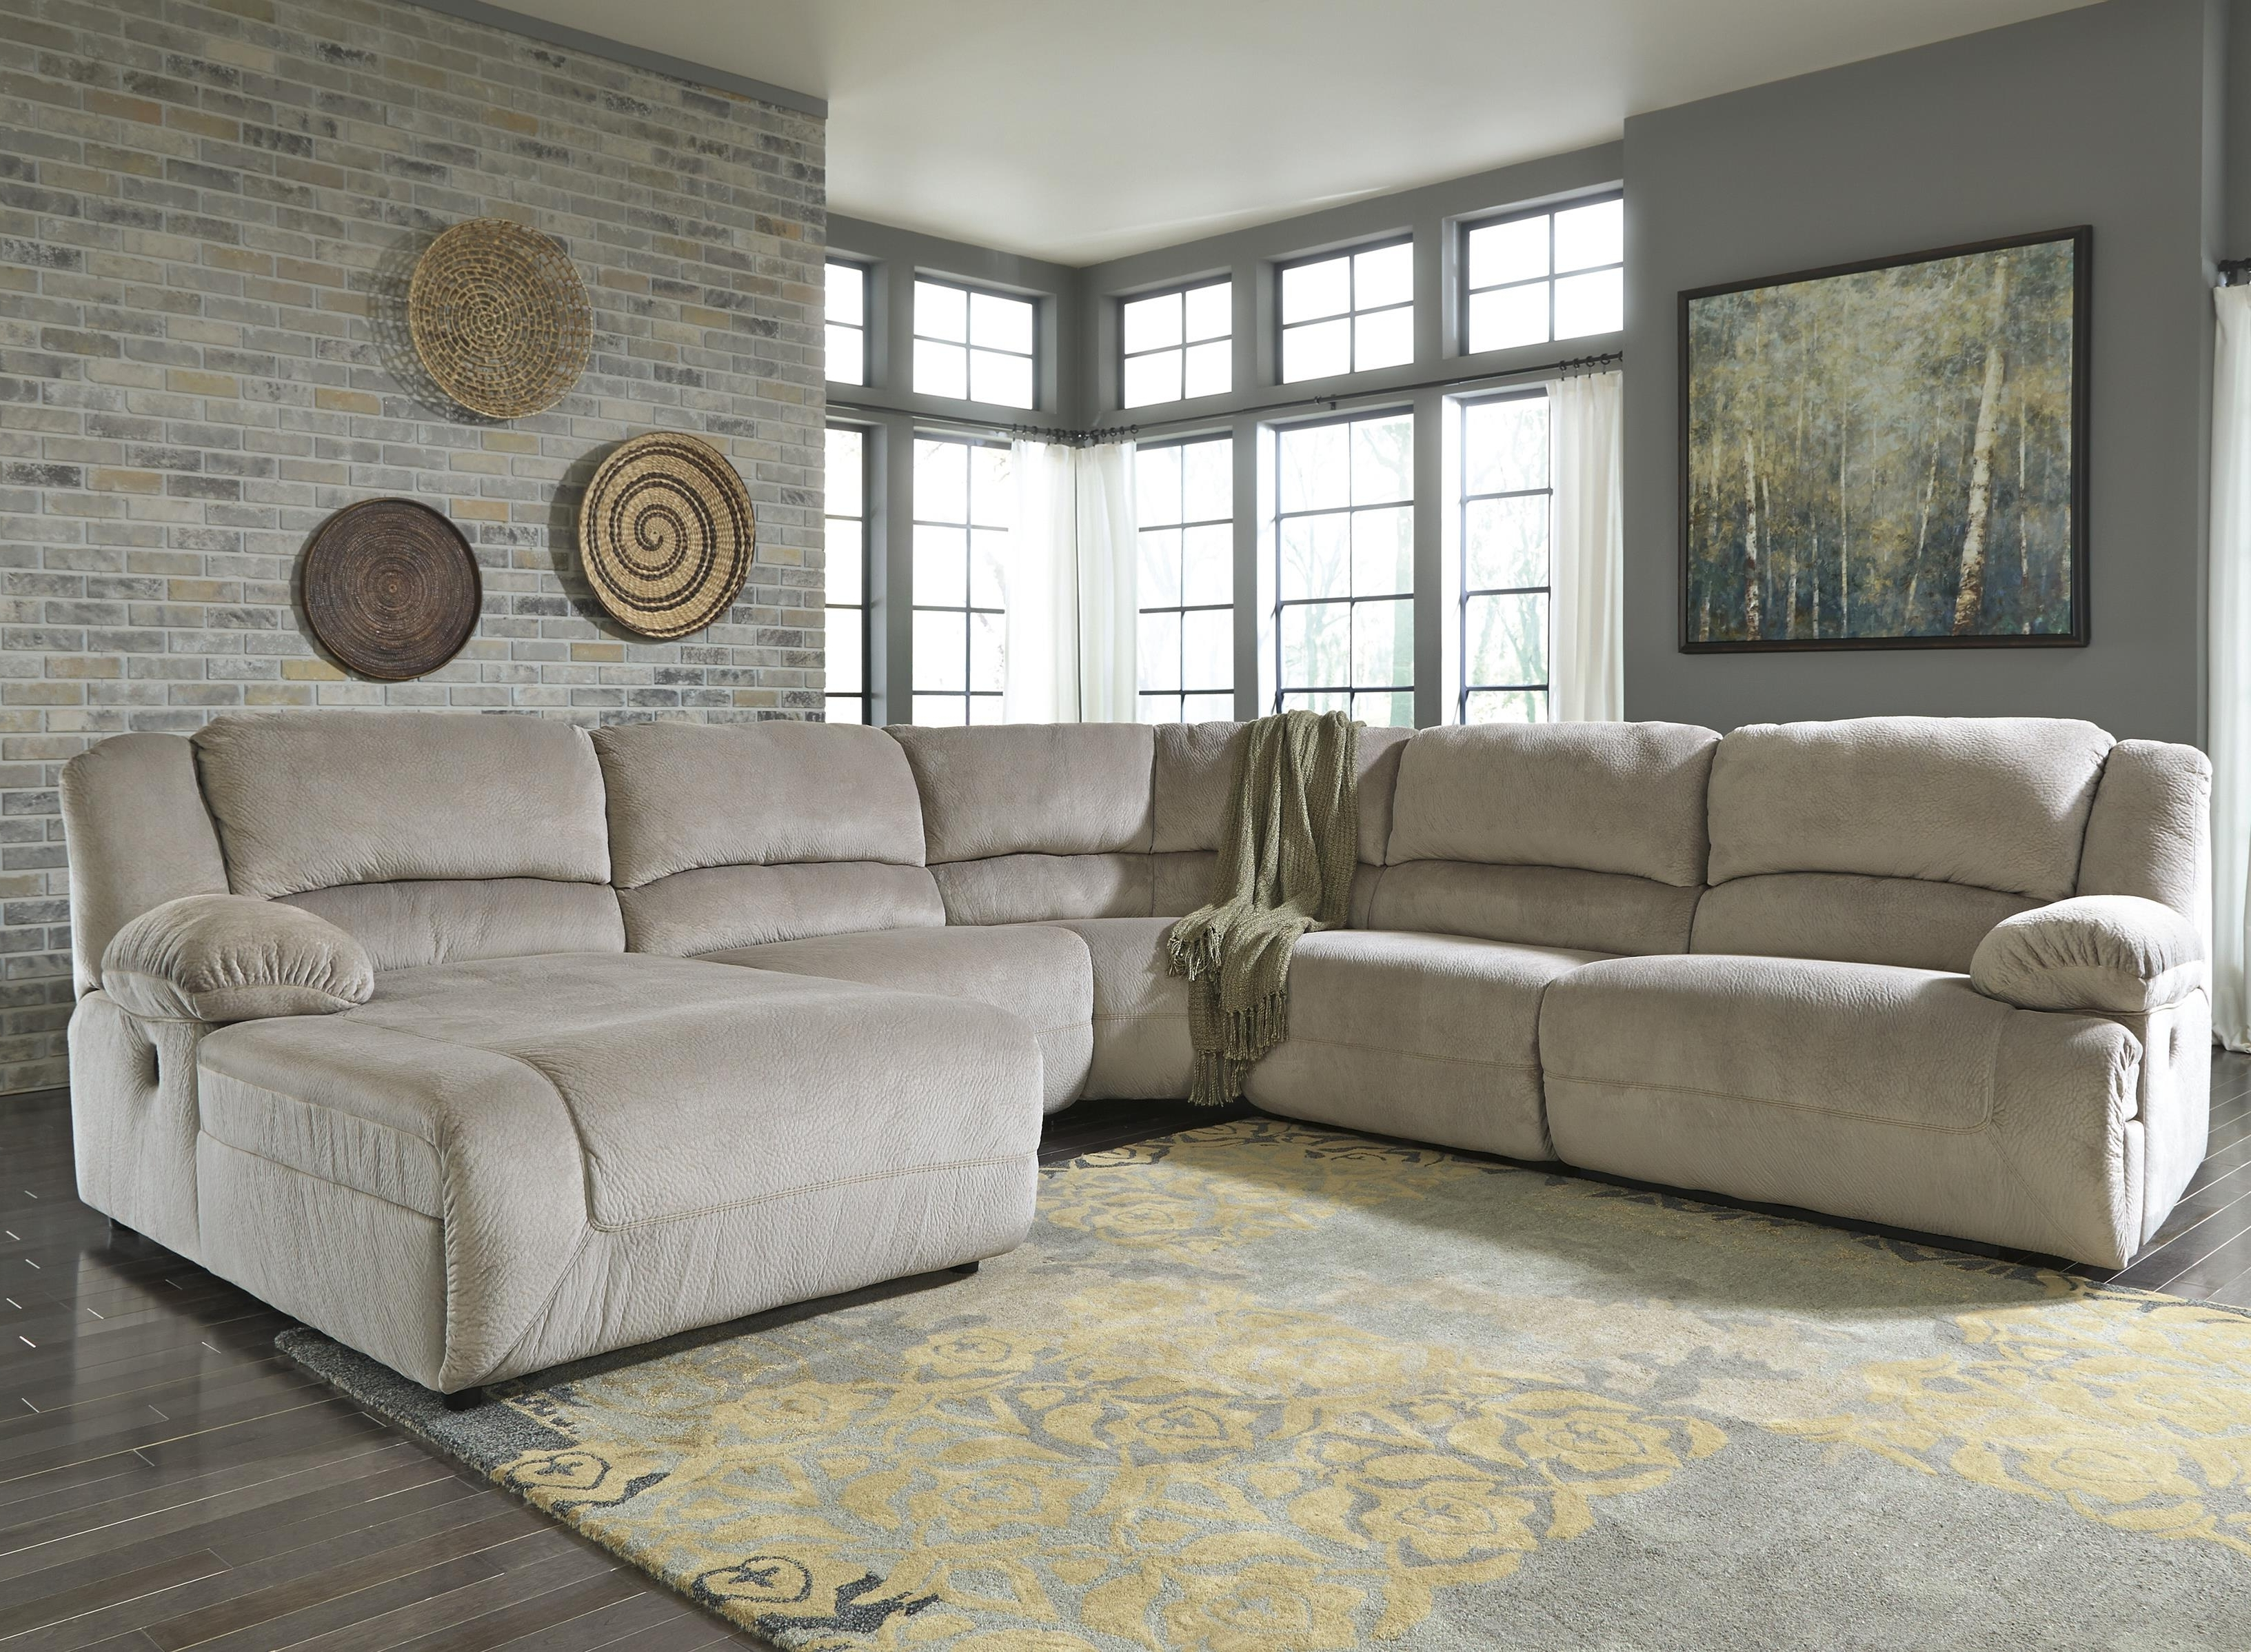 Newest Harrisburg Pa Sectional Sofas In Power Reclining Sectional With Right Press Back Chaise (View 2 of 15)